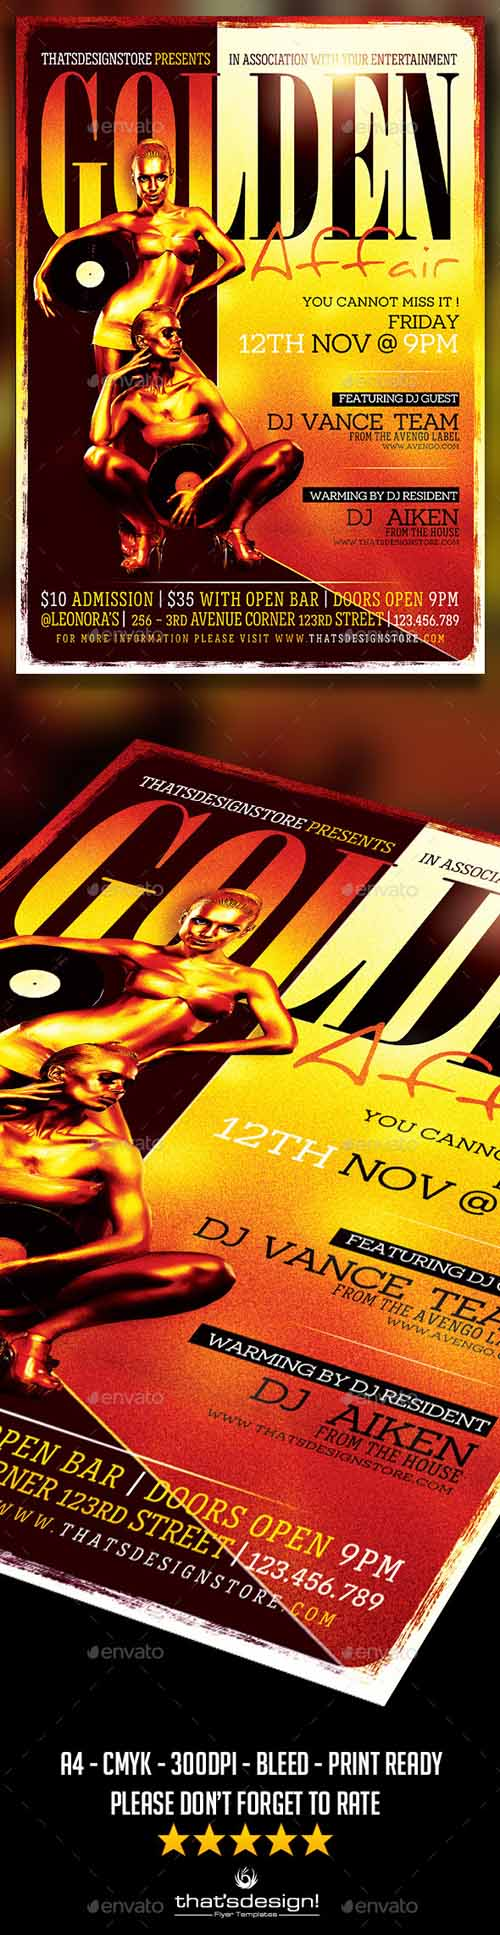 Golden affair Flyer Template 11994000